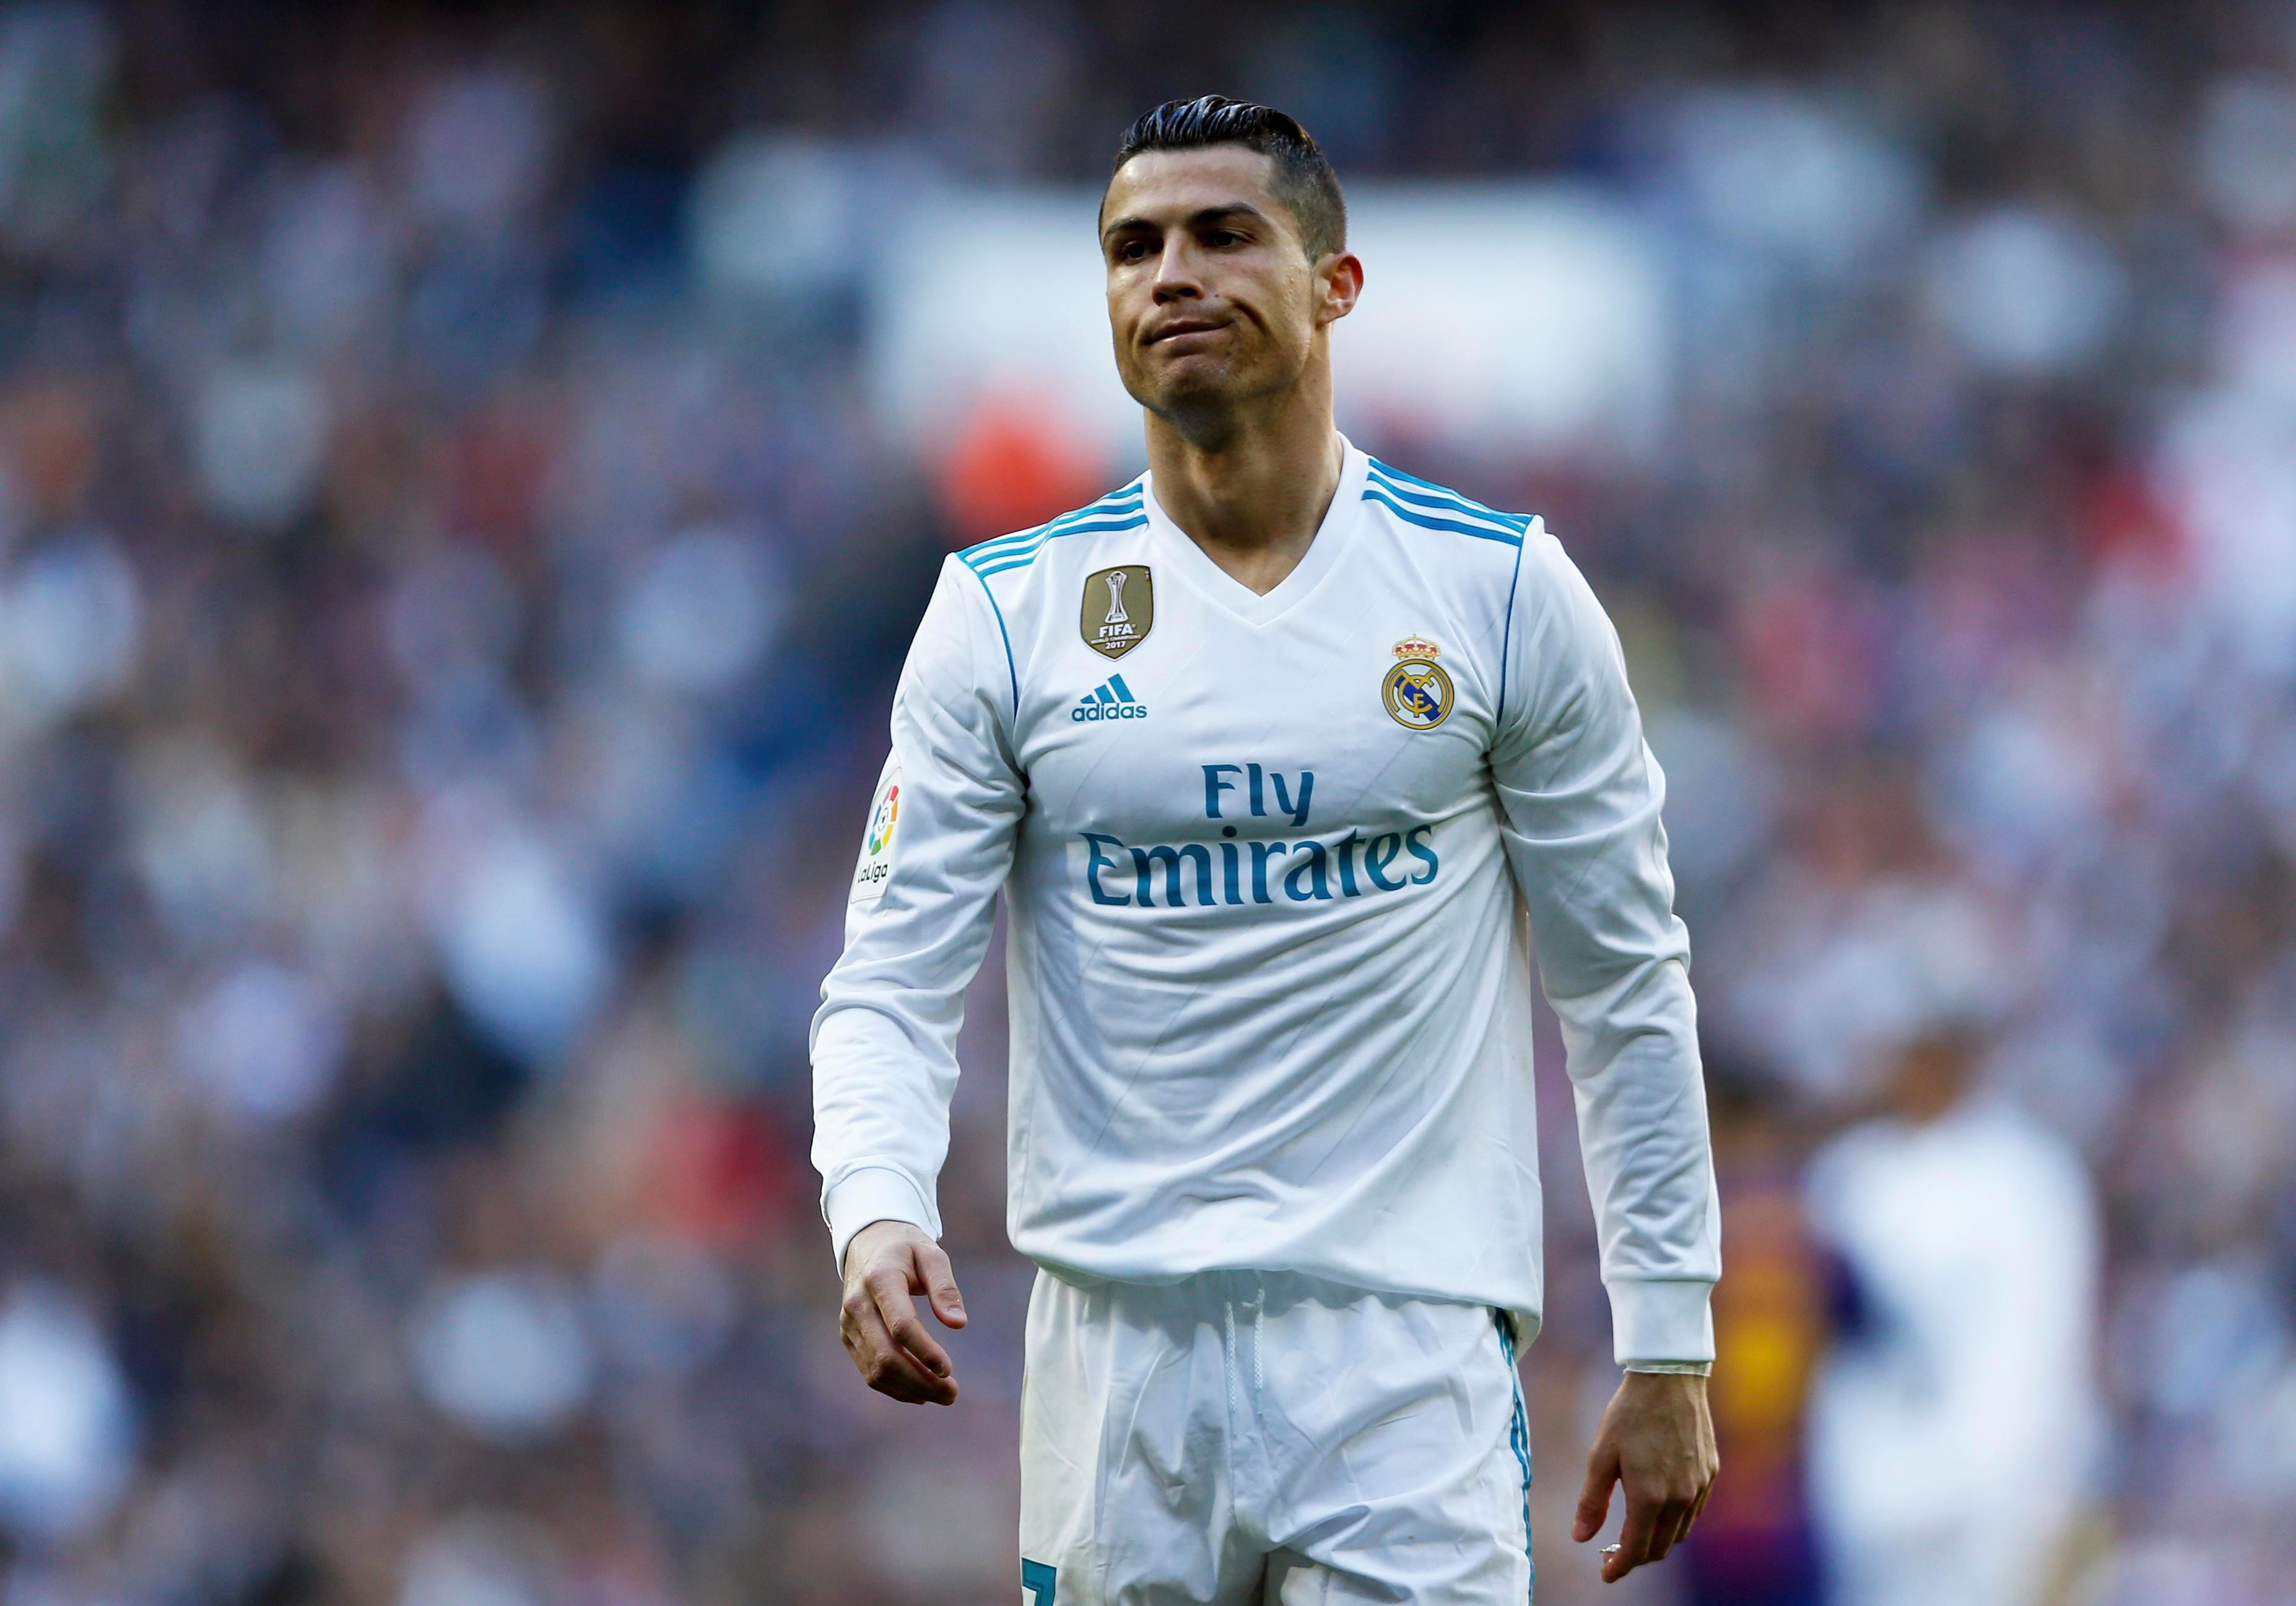 PSG still dream of signing Cristiano Ronaldo in the summer